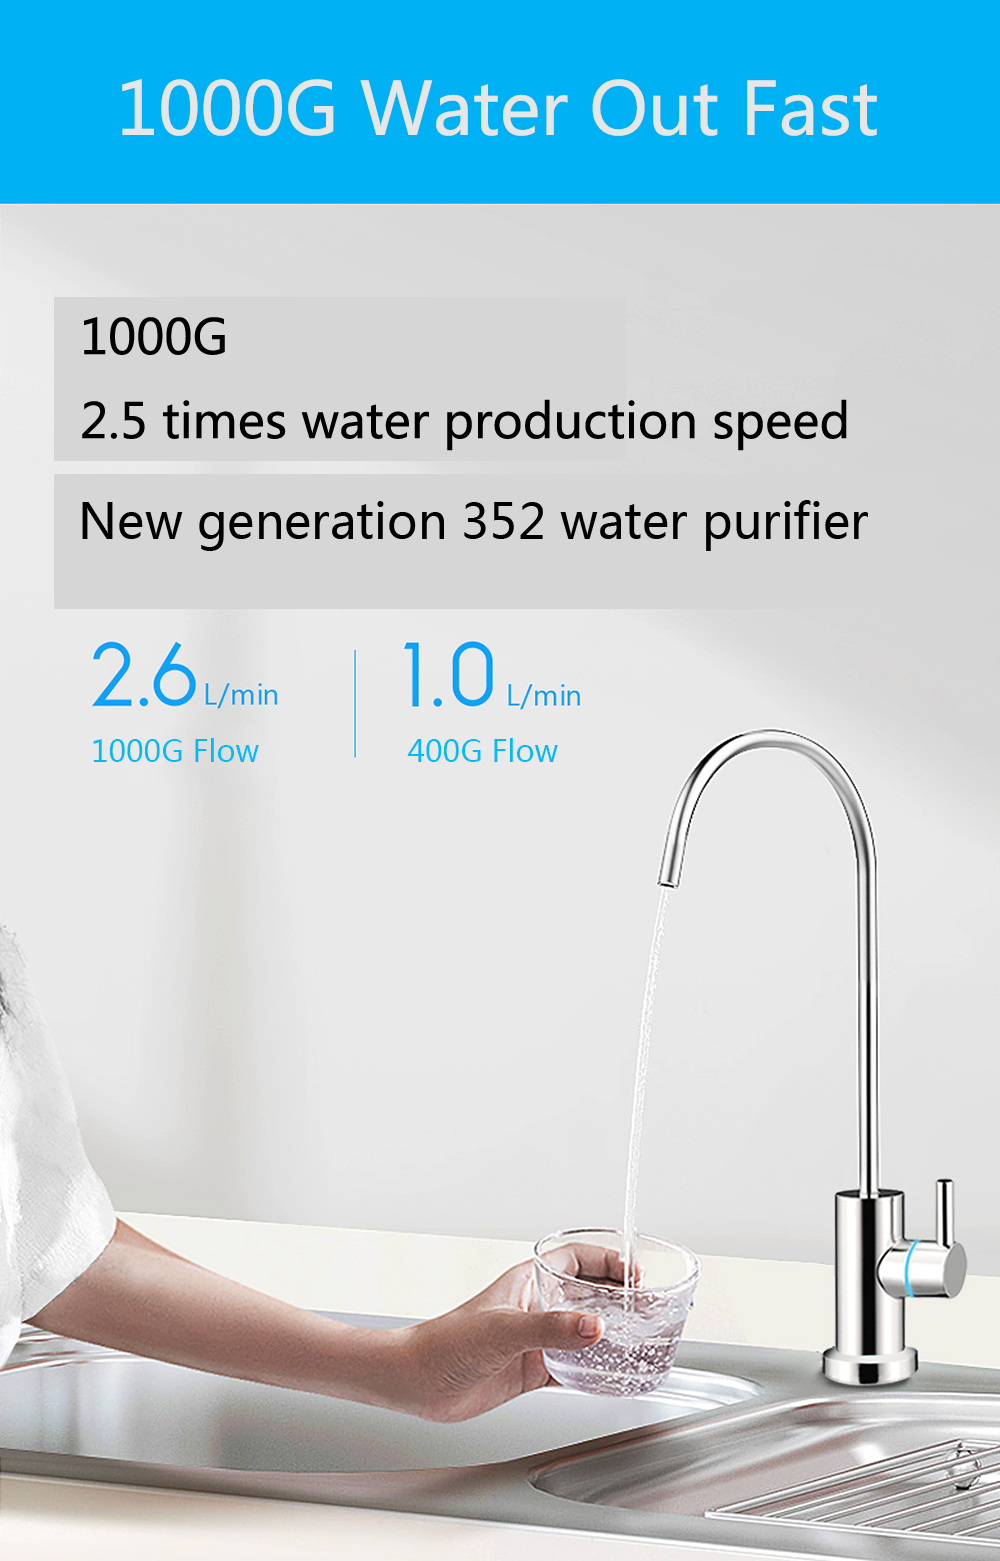 New 352 Smart Water Purifier 1000G RO Membrane Reverse Osmosis Water Filter System Kitchen Type Household from XIAOMI youpin